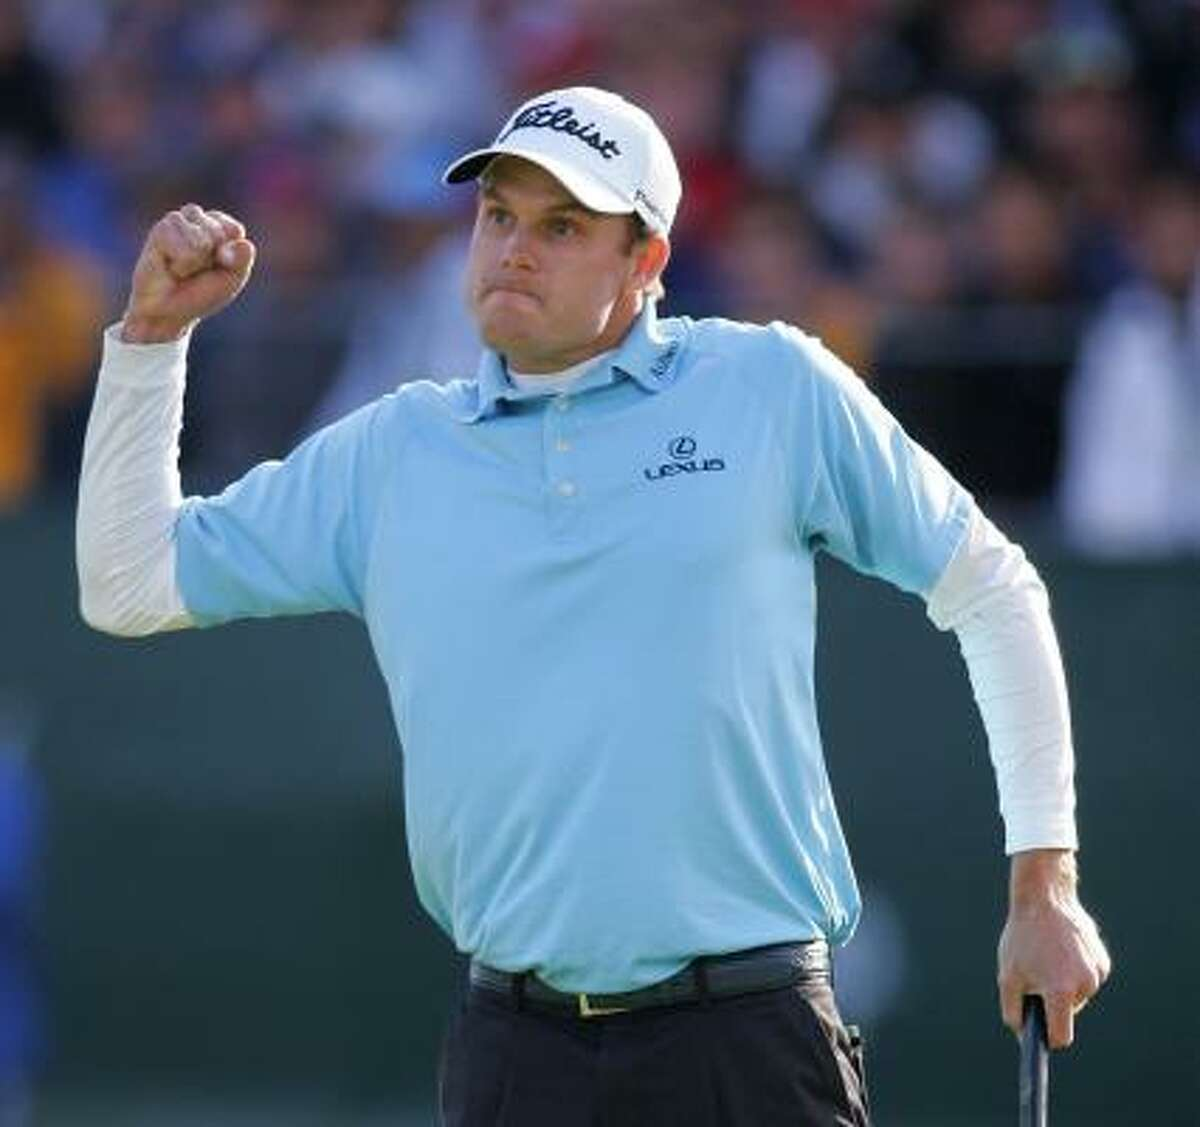 Nick Watney celebrates his victory after making birdie on the 18th hole for a one-shot victory at the Buick Invitational.